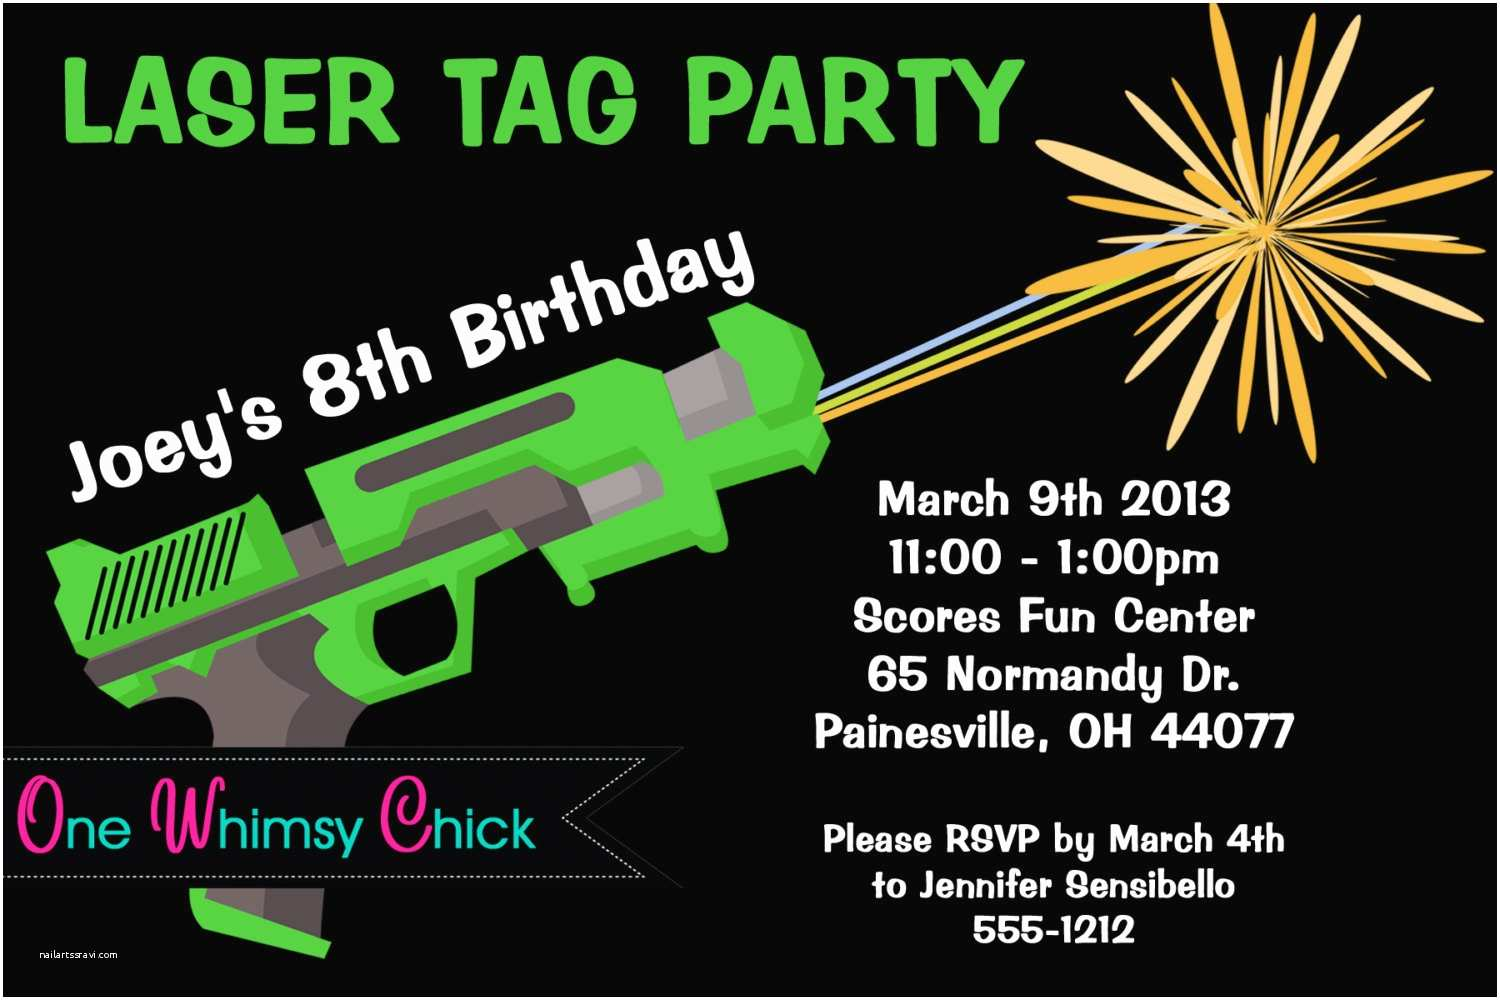 Laser Tag Party Invitations Laser Tag Birthday Invitation Printable or Printed Laser